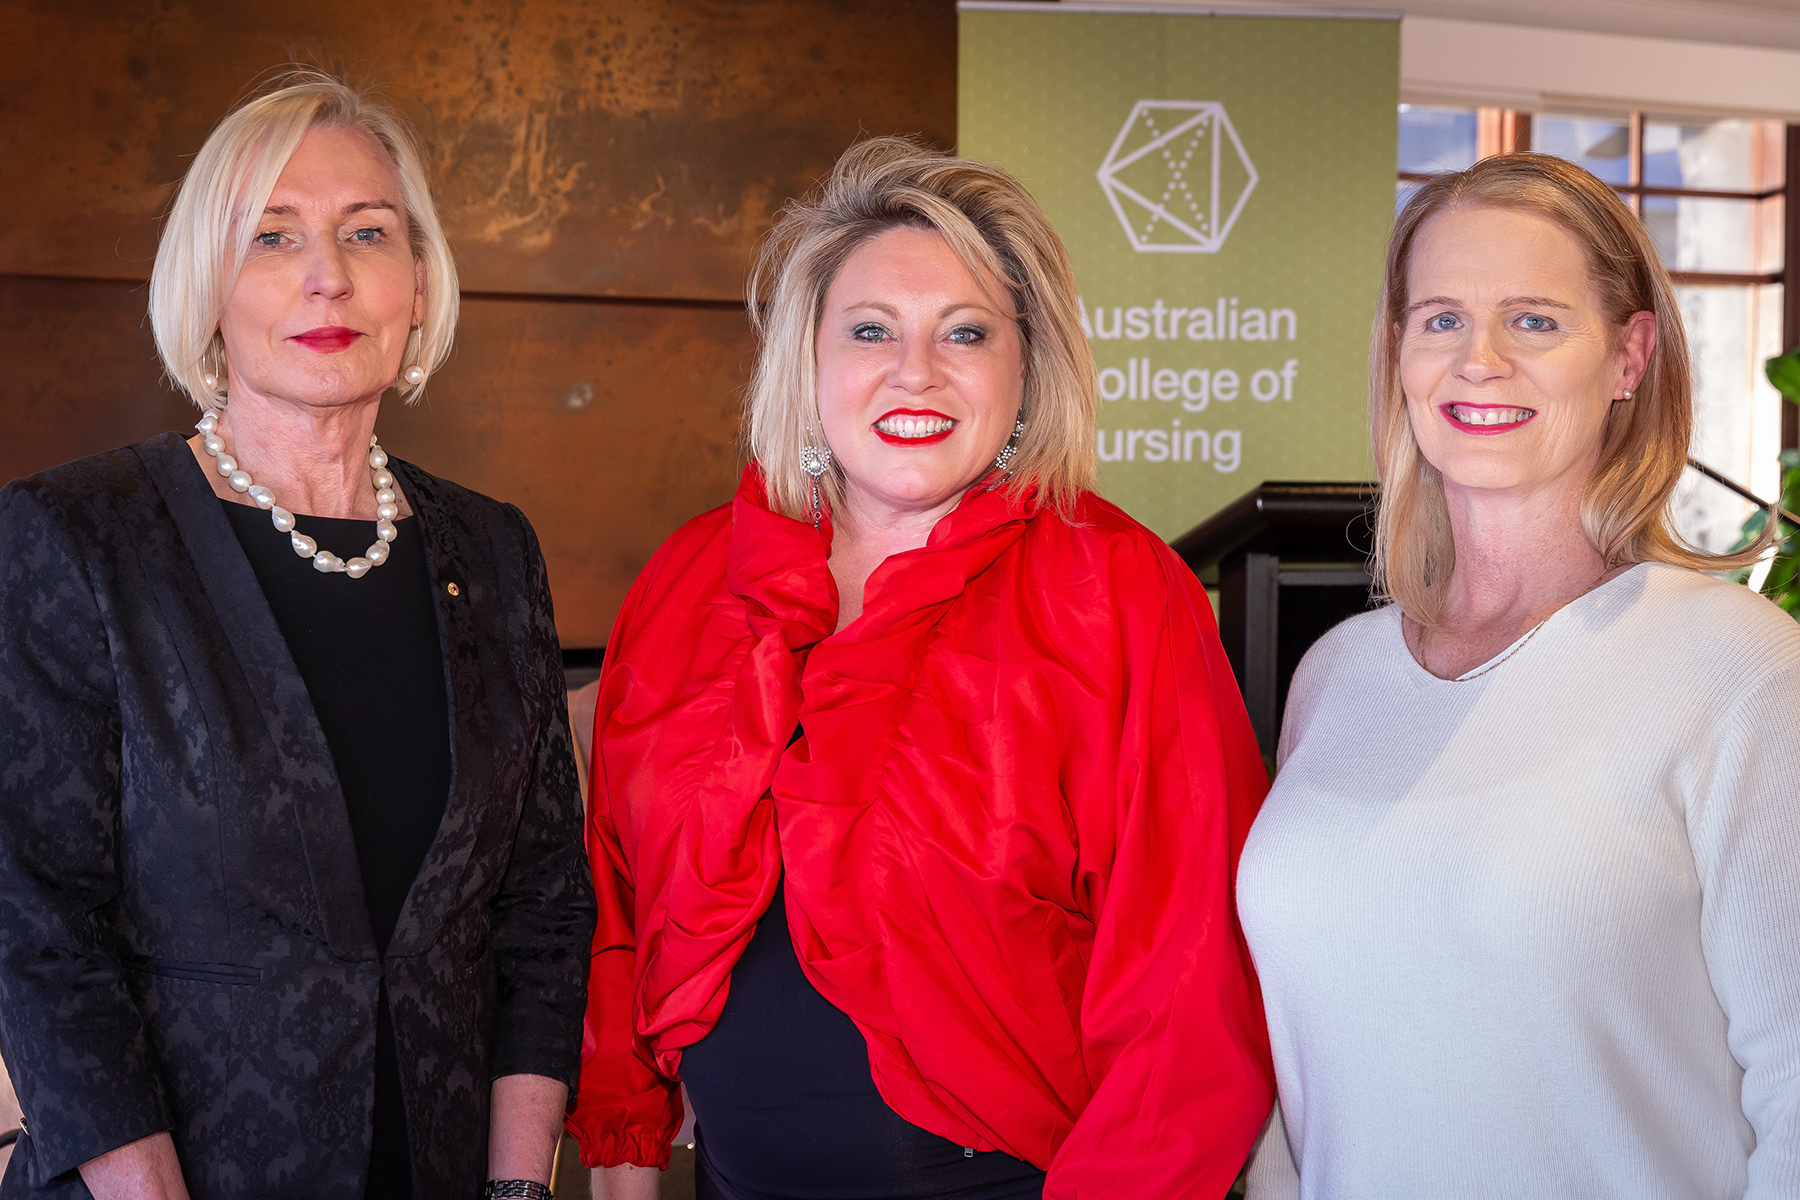 Let's talk leadership featuring Catherine McGregor AM